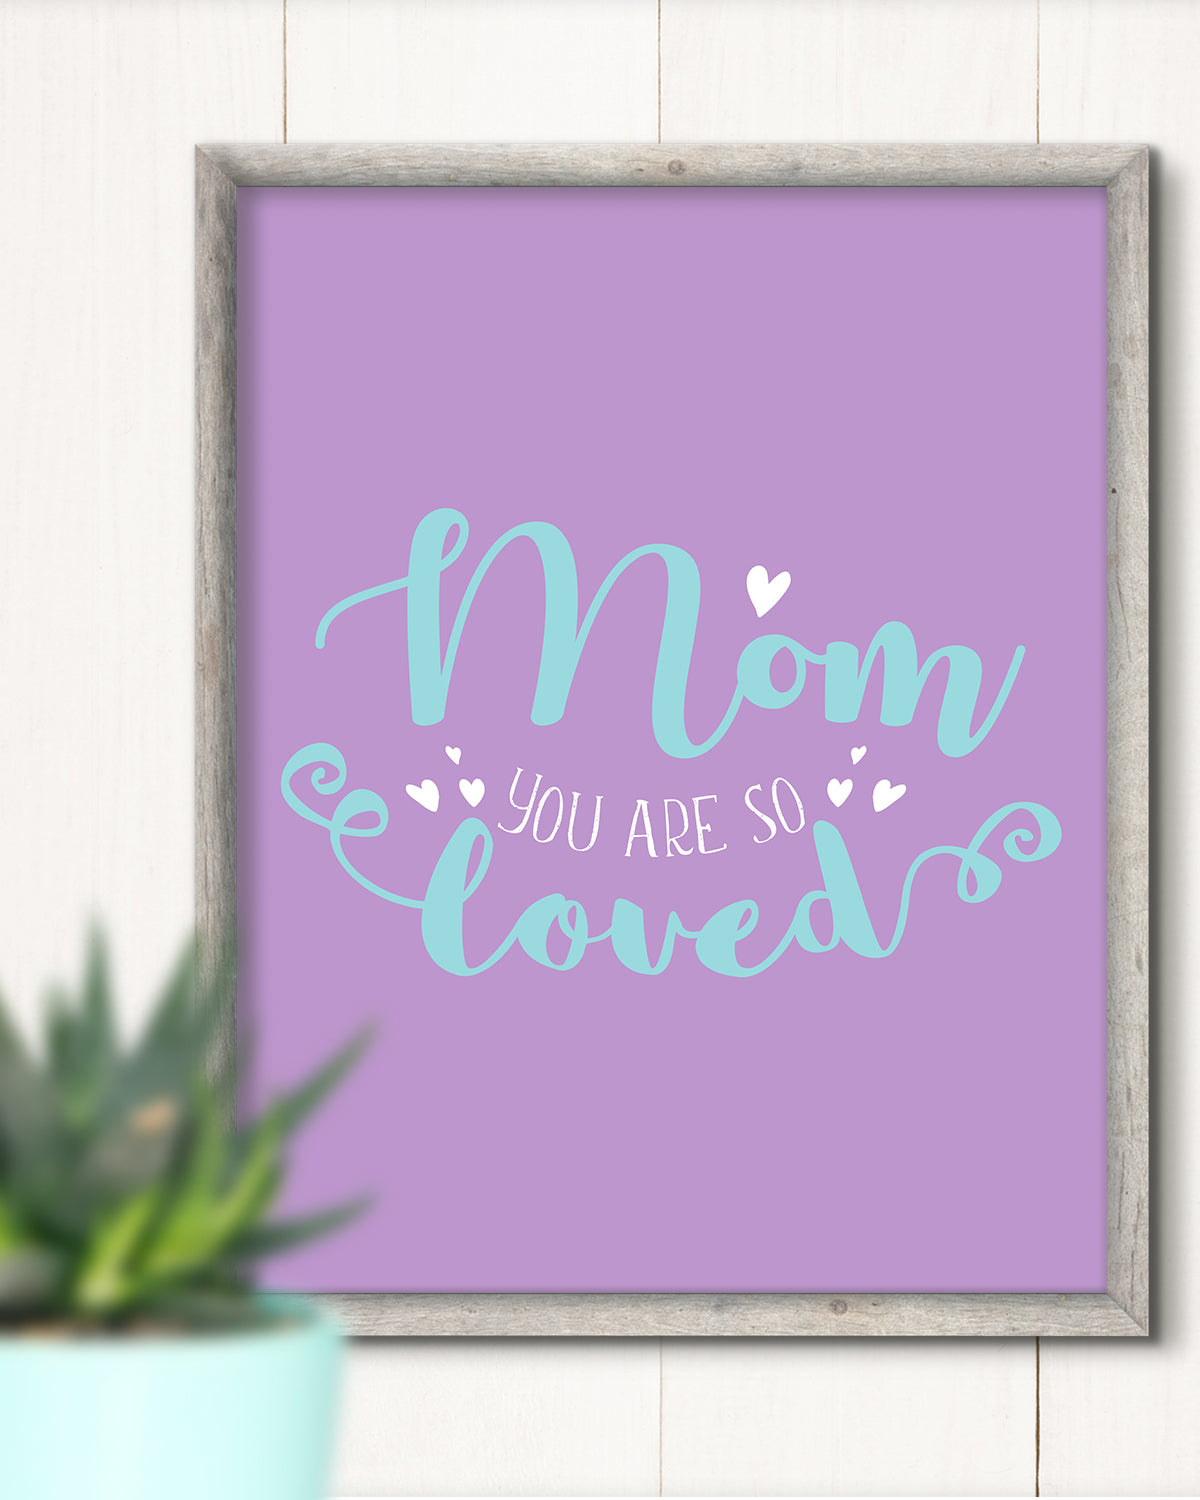 Mom You are so Loved - Wall Decor Art Print with Purple background - 8x10 unframed print for mothers